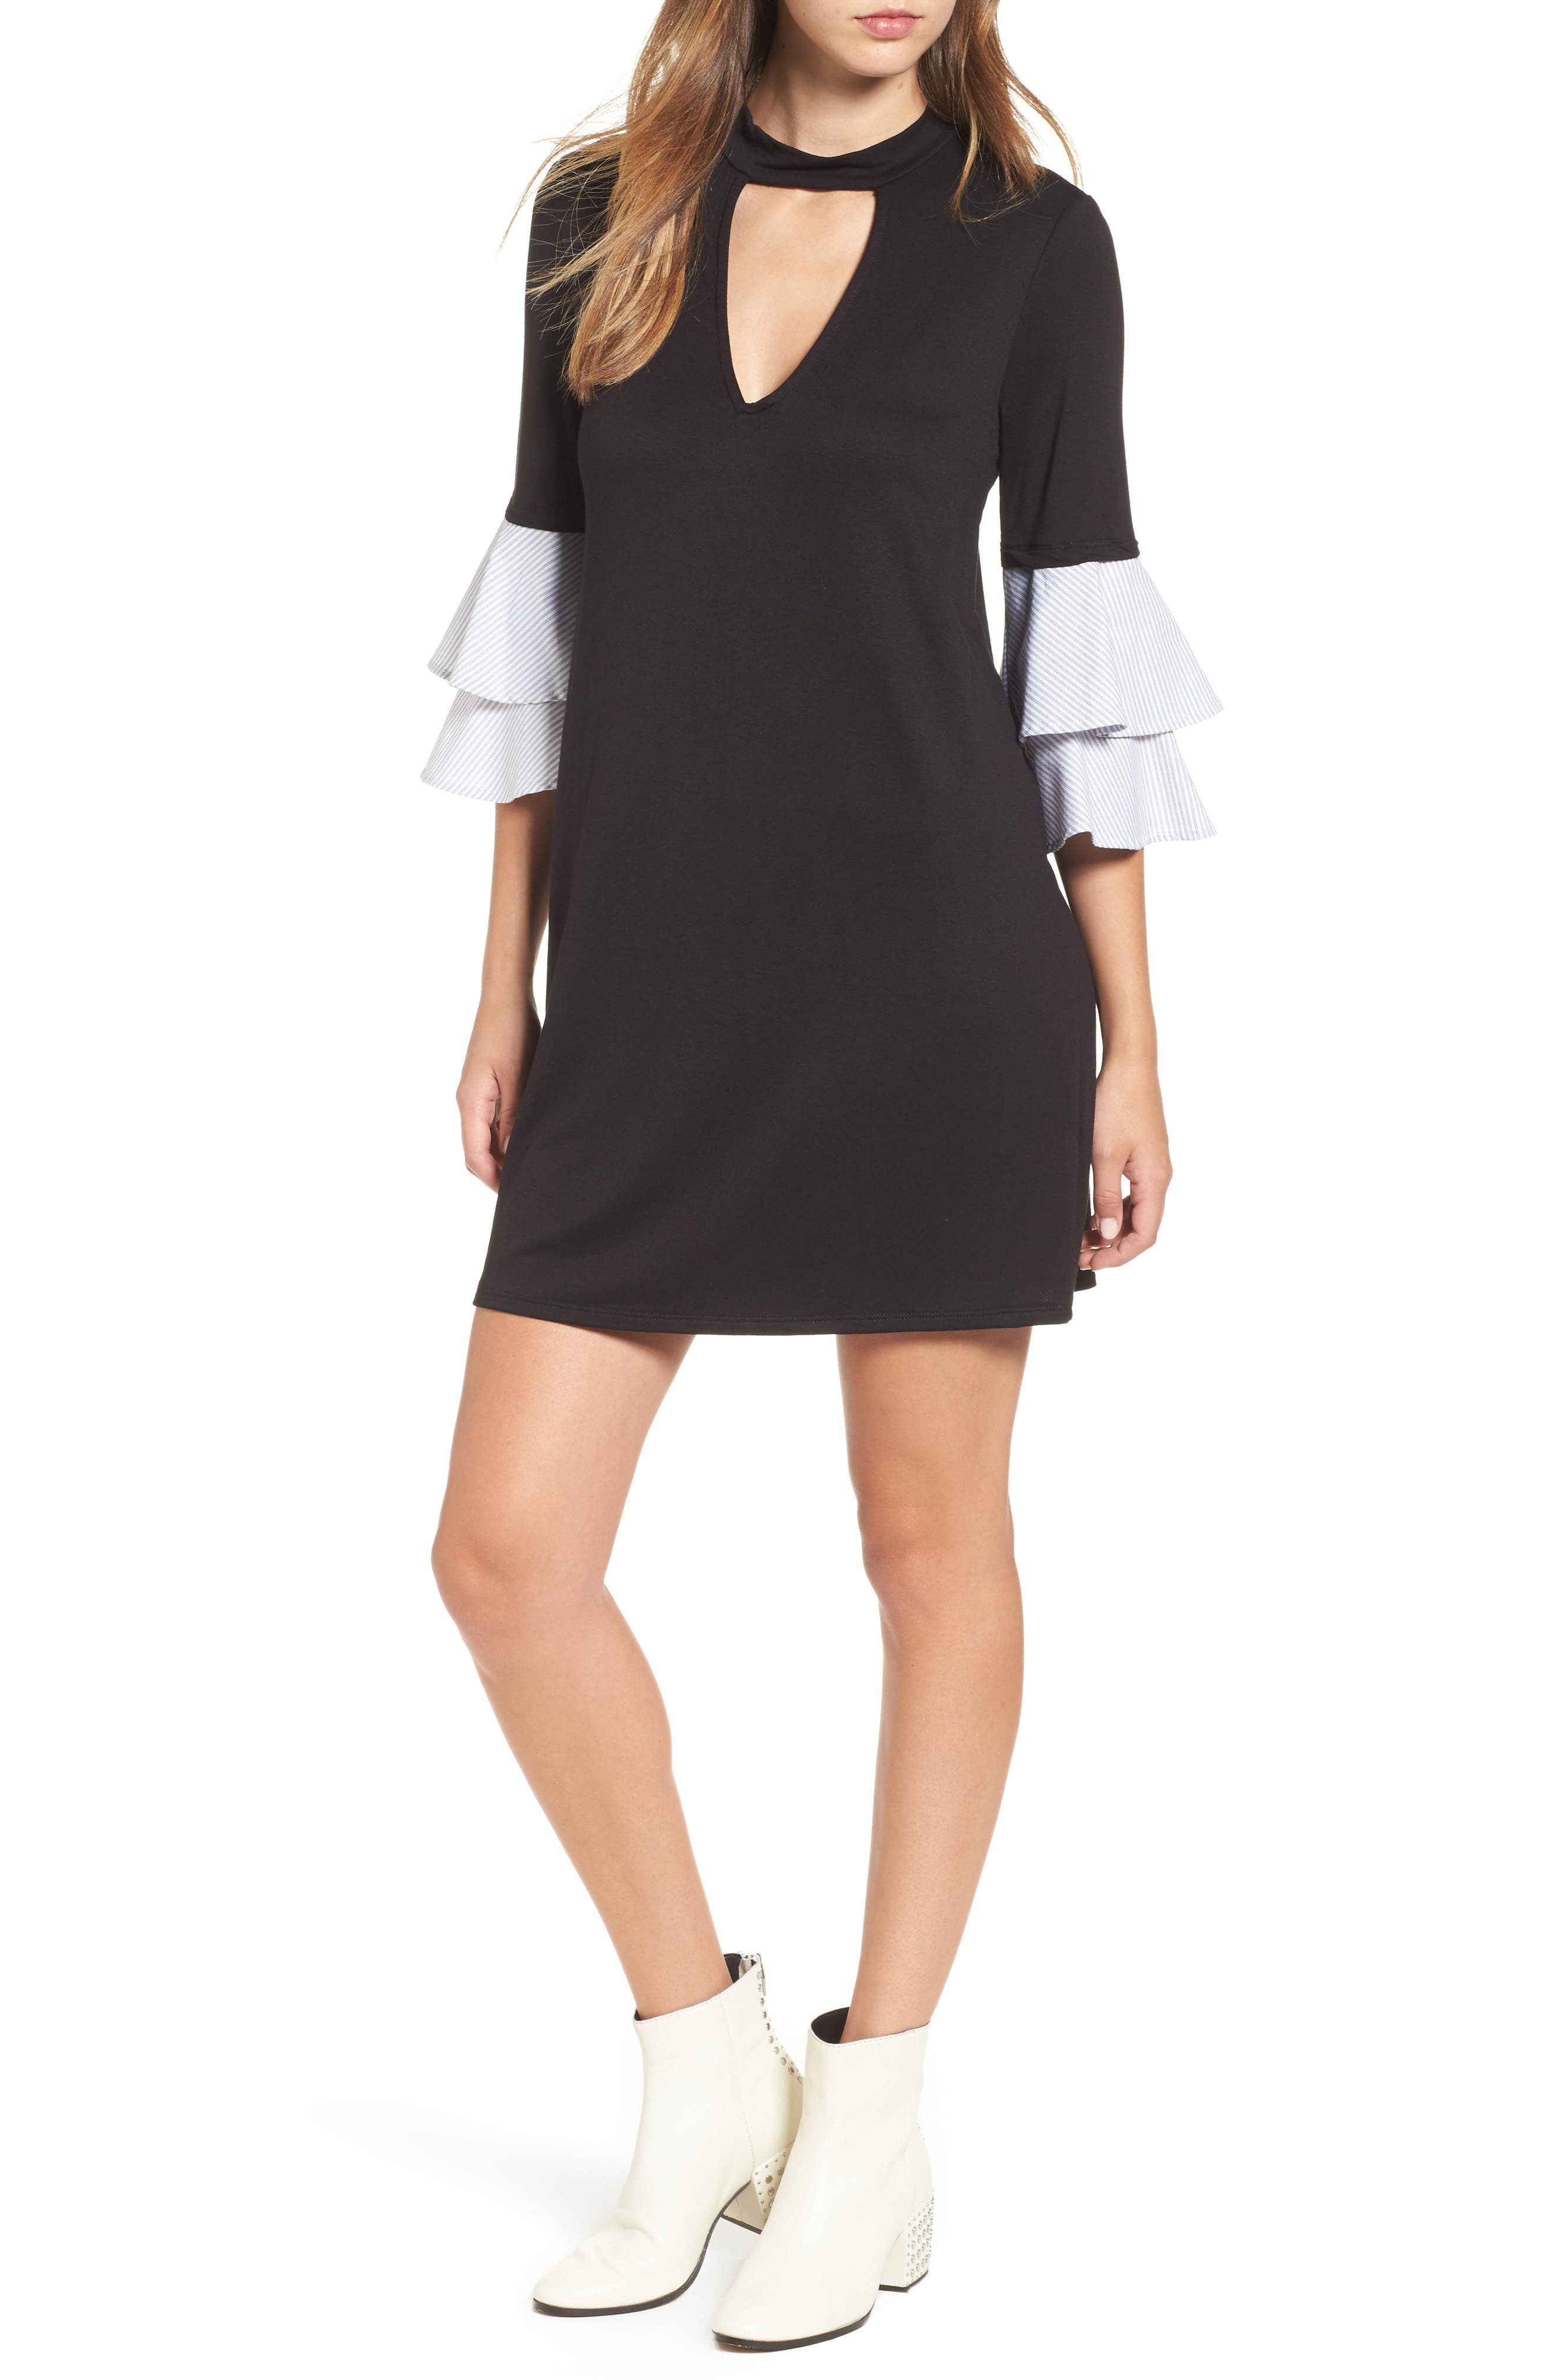 Socialite Poplin Sleeve Choker Dress